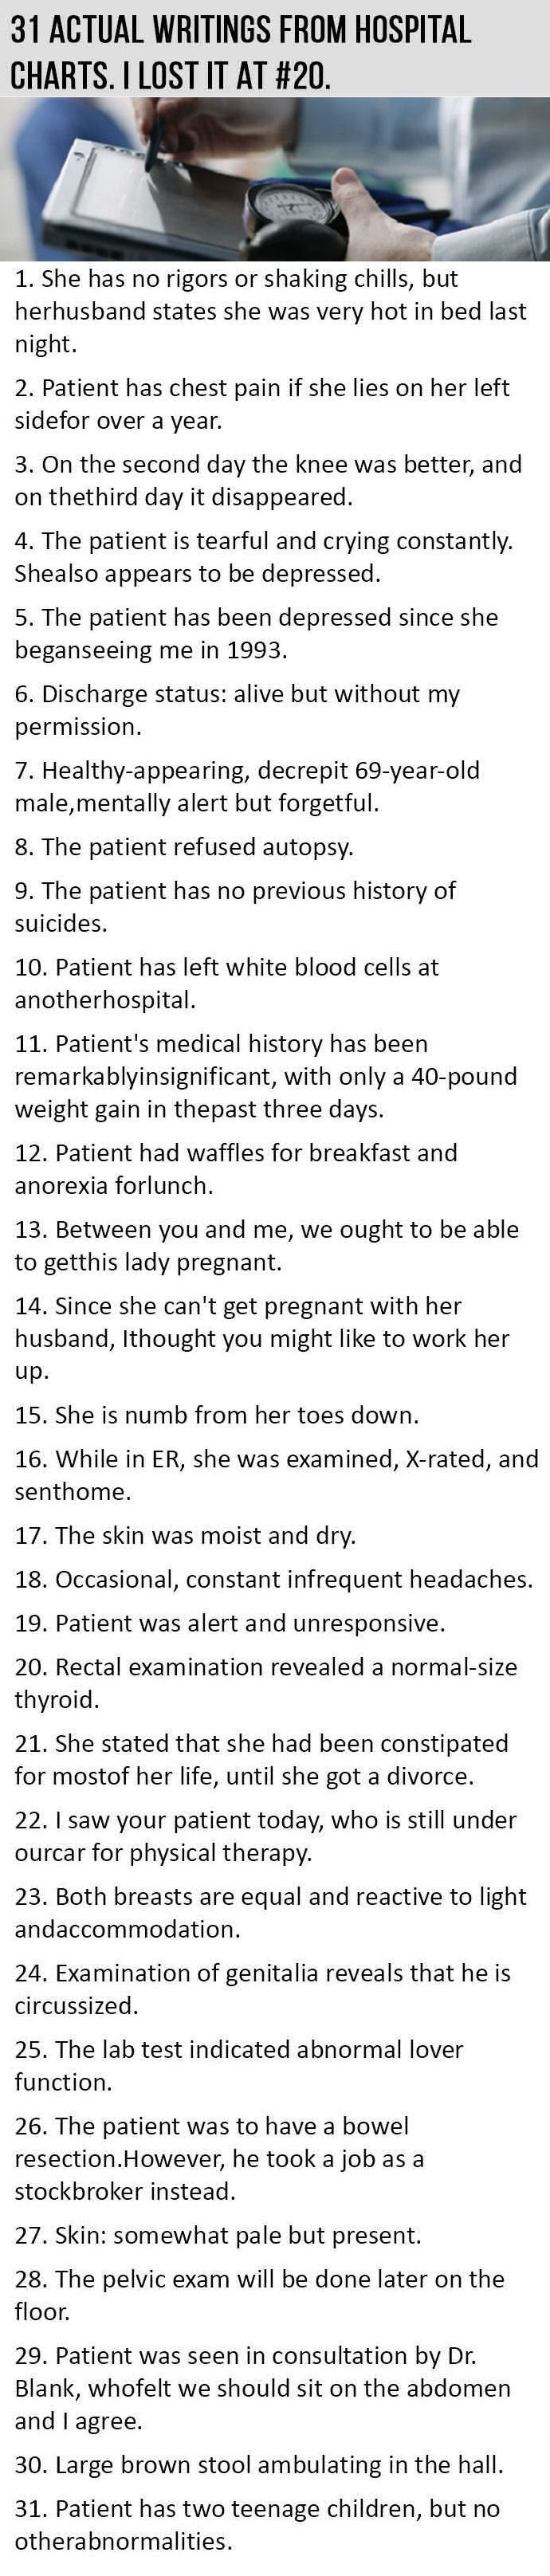 Actual Writings From Hospital Charts Funny Jokes Lol Funny - 30 dumbest sentences found in patients hospital charts